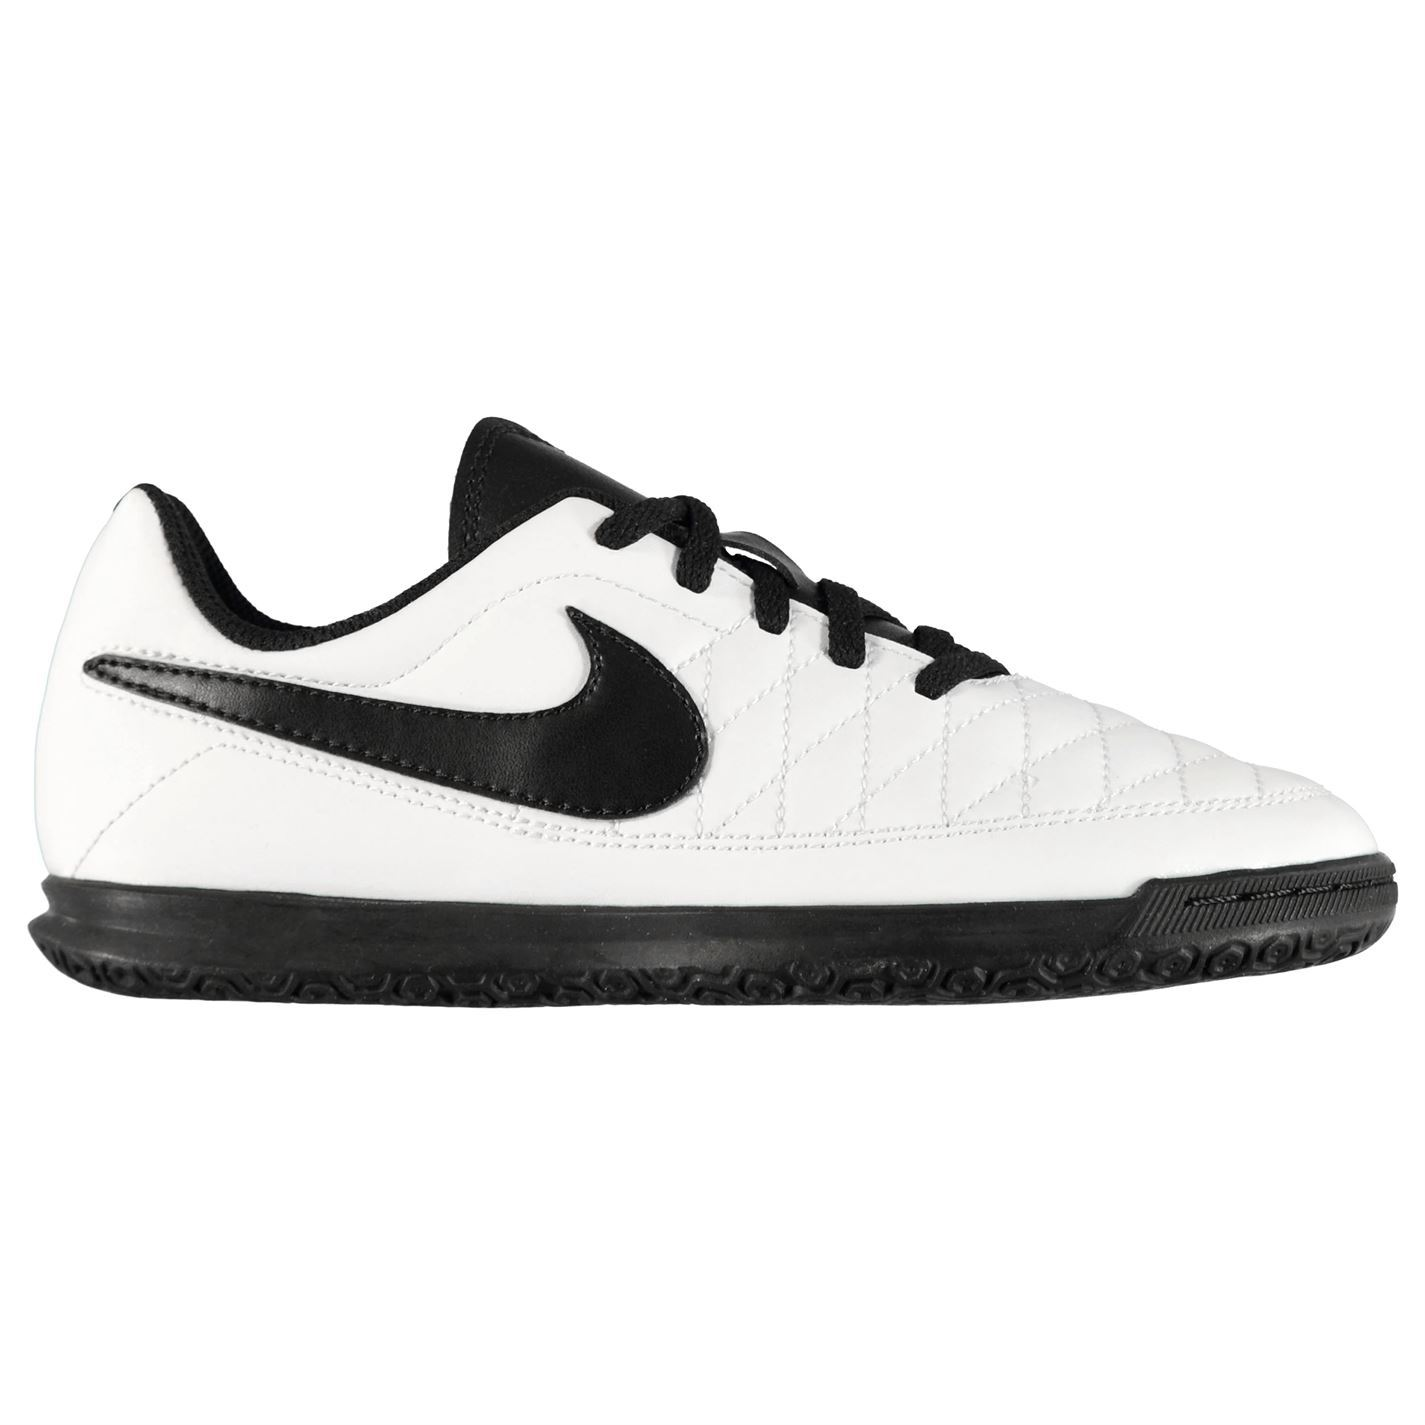 Nike-majestry-Indoor-Court-Football-formateurs-juniors-Football-Baskets-Chaussures miniature 13